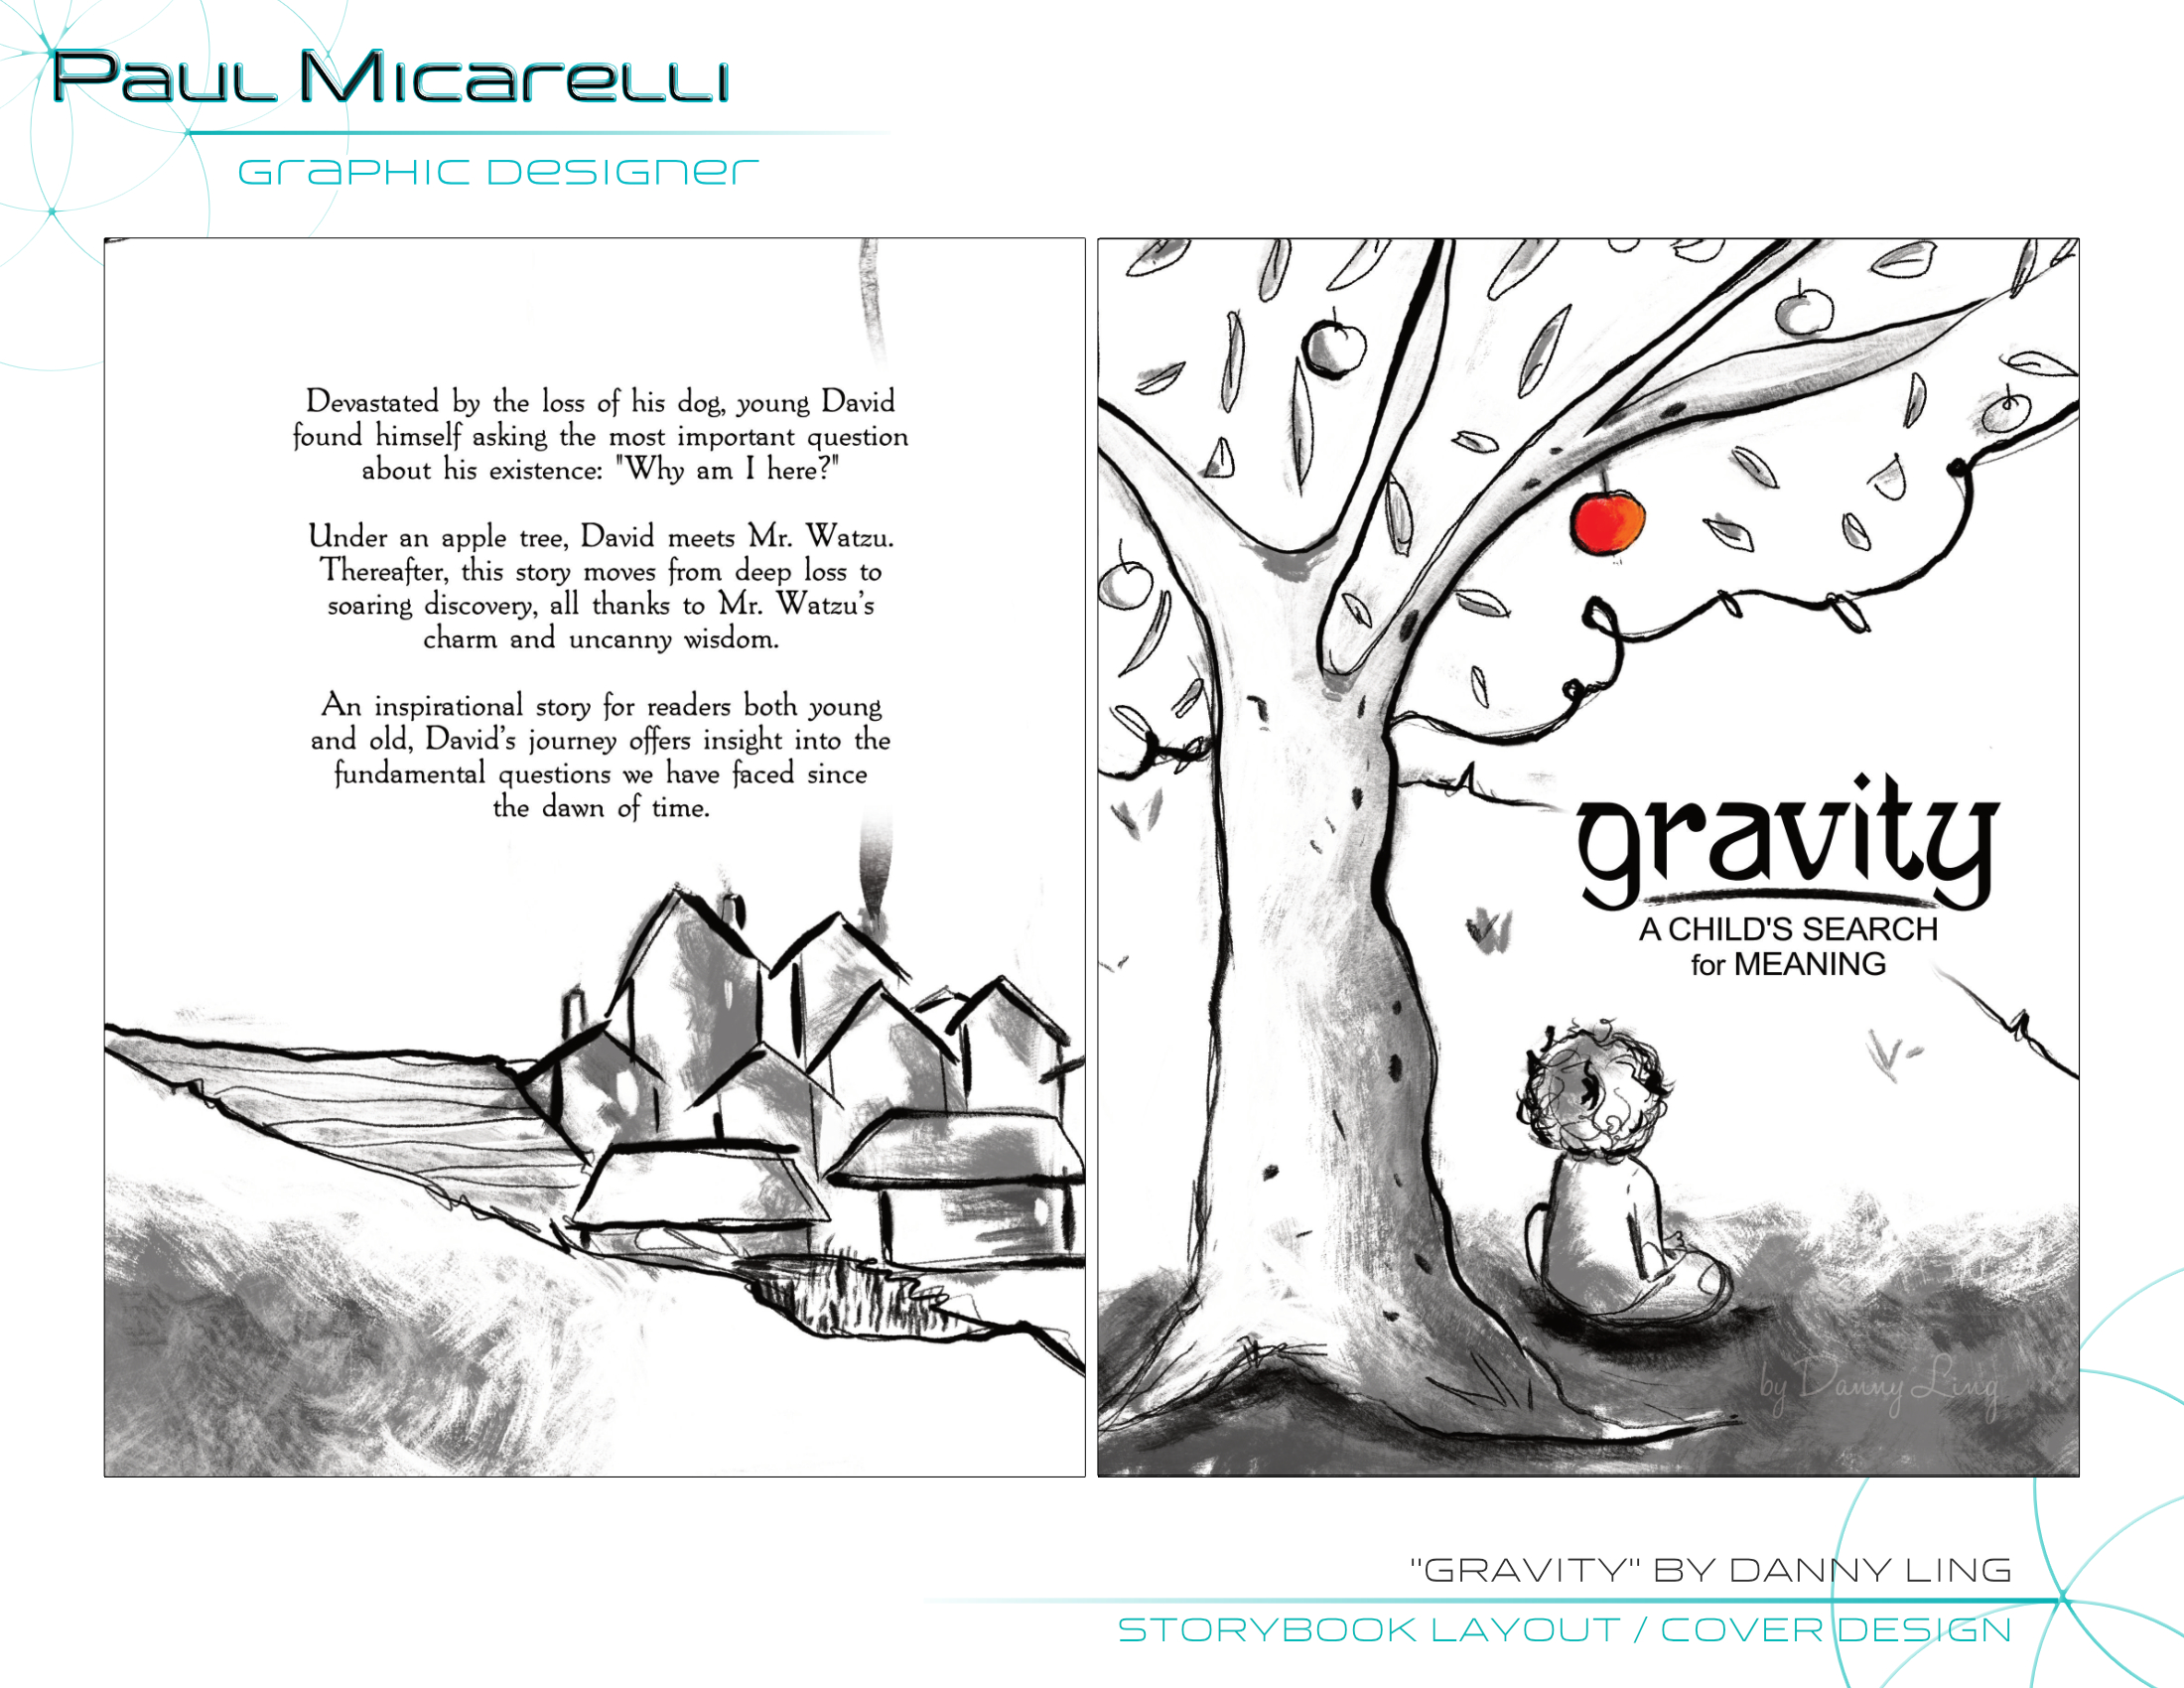 Paul-Micarelli-Gravity-Book Cover Design